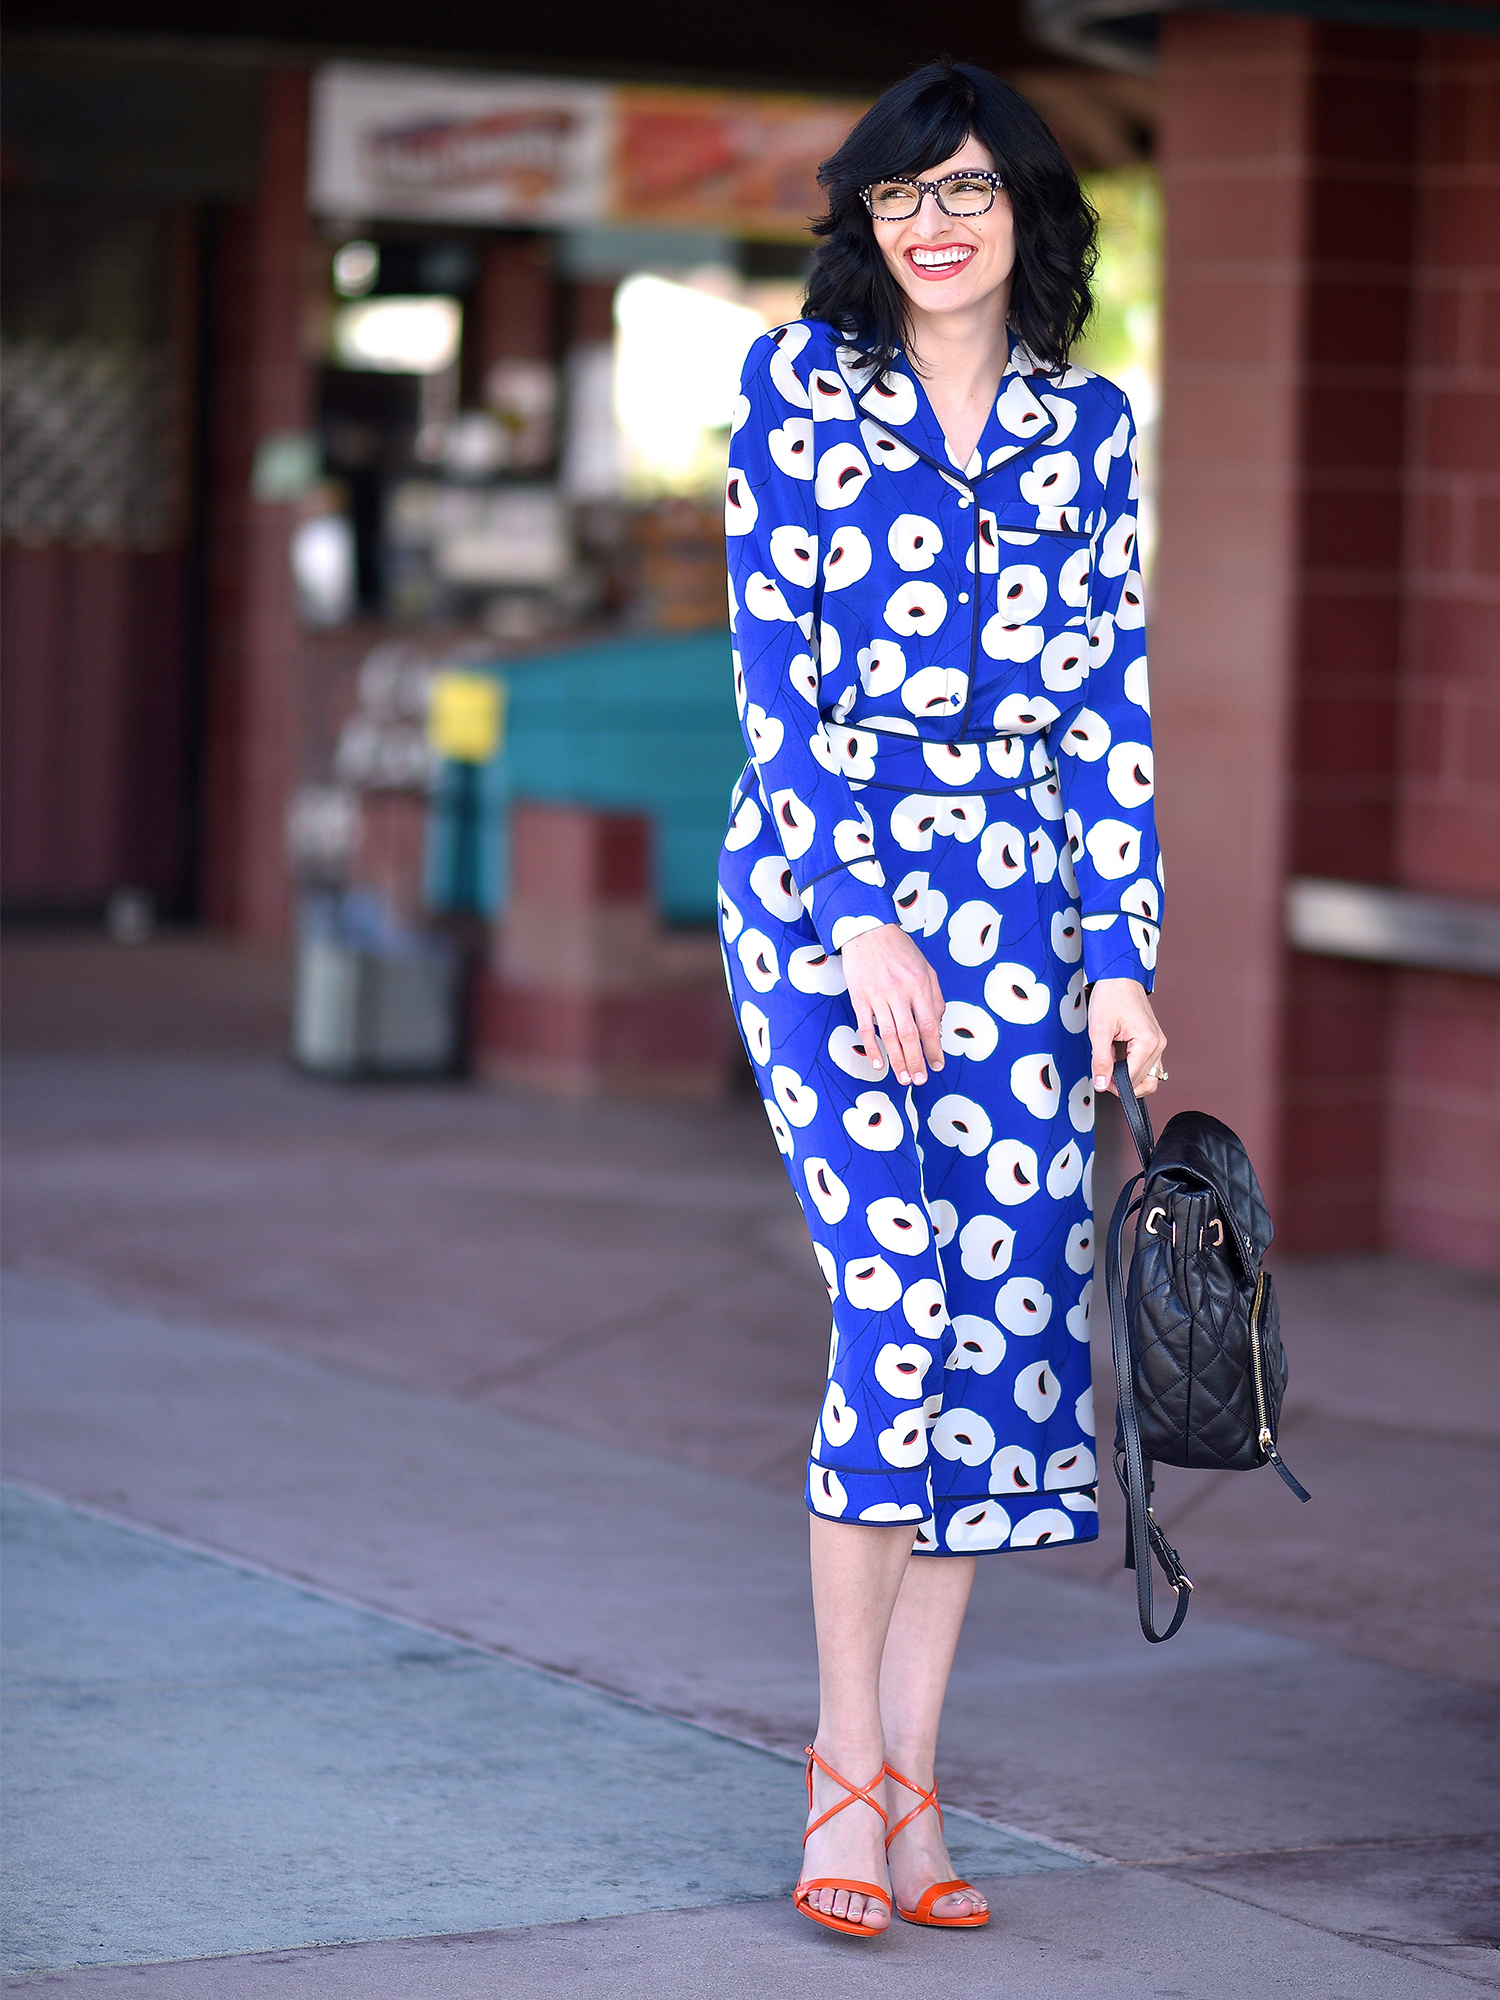 Jenna-Pilant-Lucky-Little-Mustardseed-How-To-Dress-Up-Silk-Pajamas